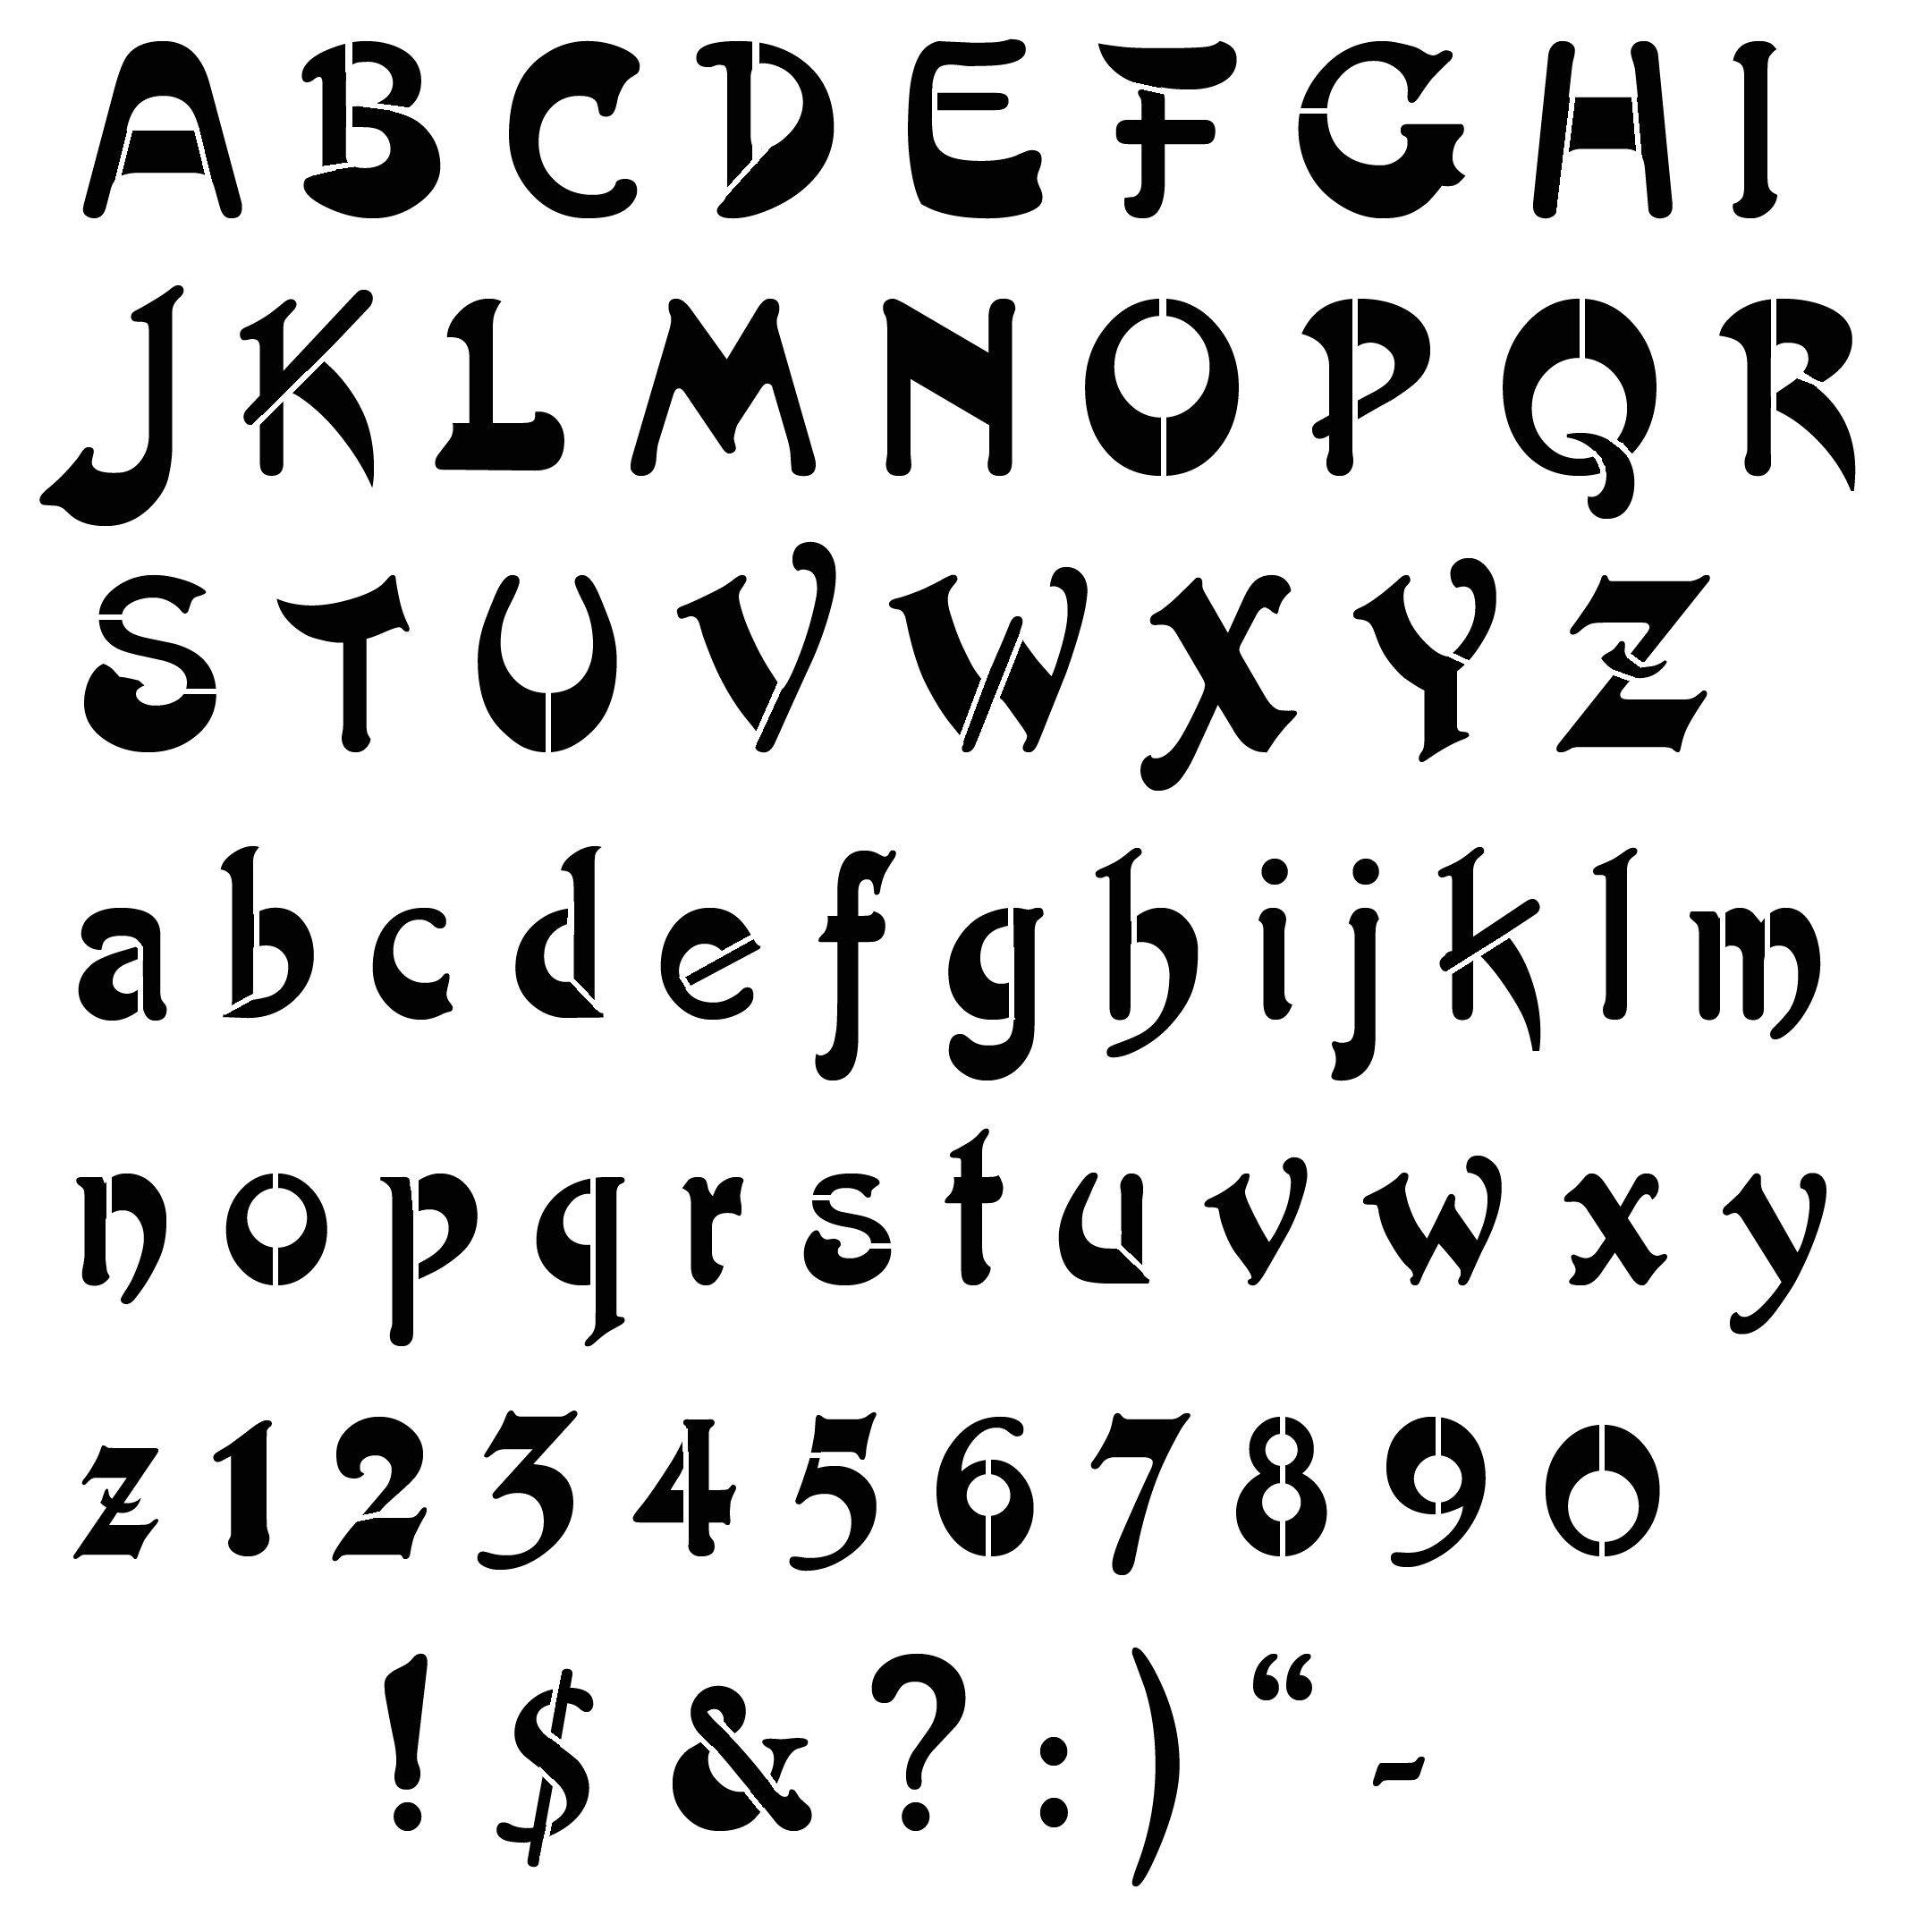 Font Templates to Print Free Cut Out Alphabet Stencils View Image Design View